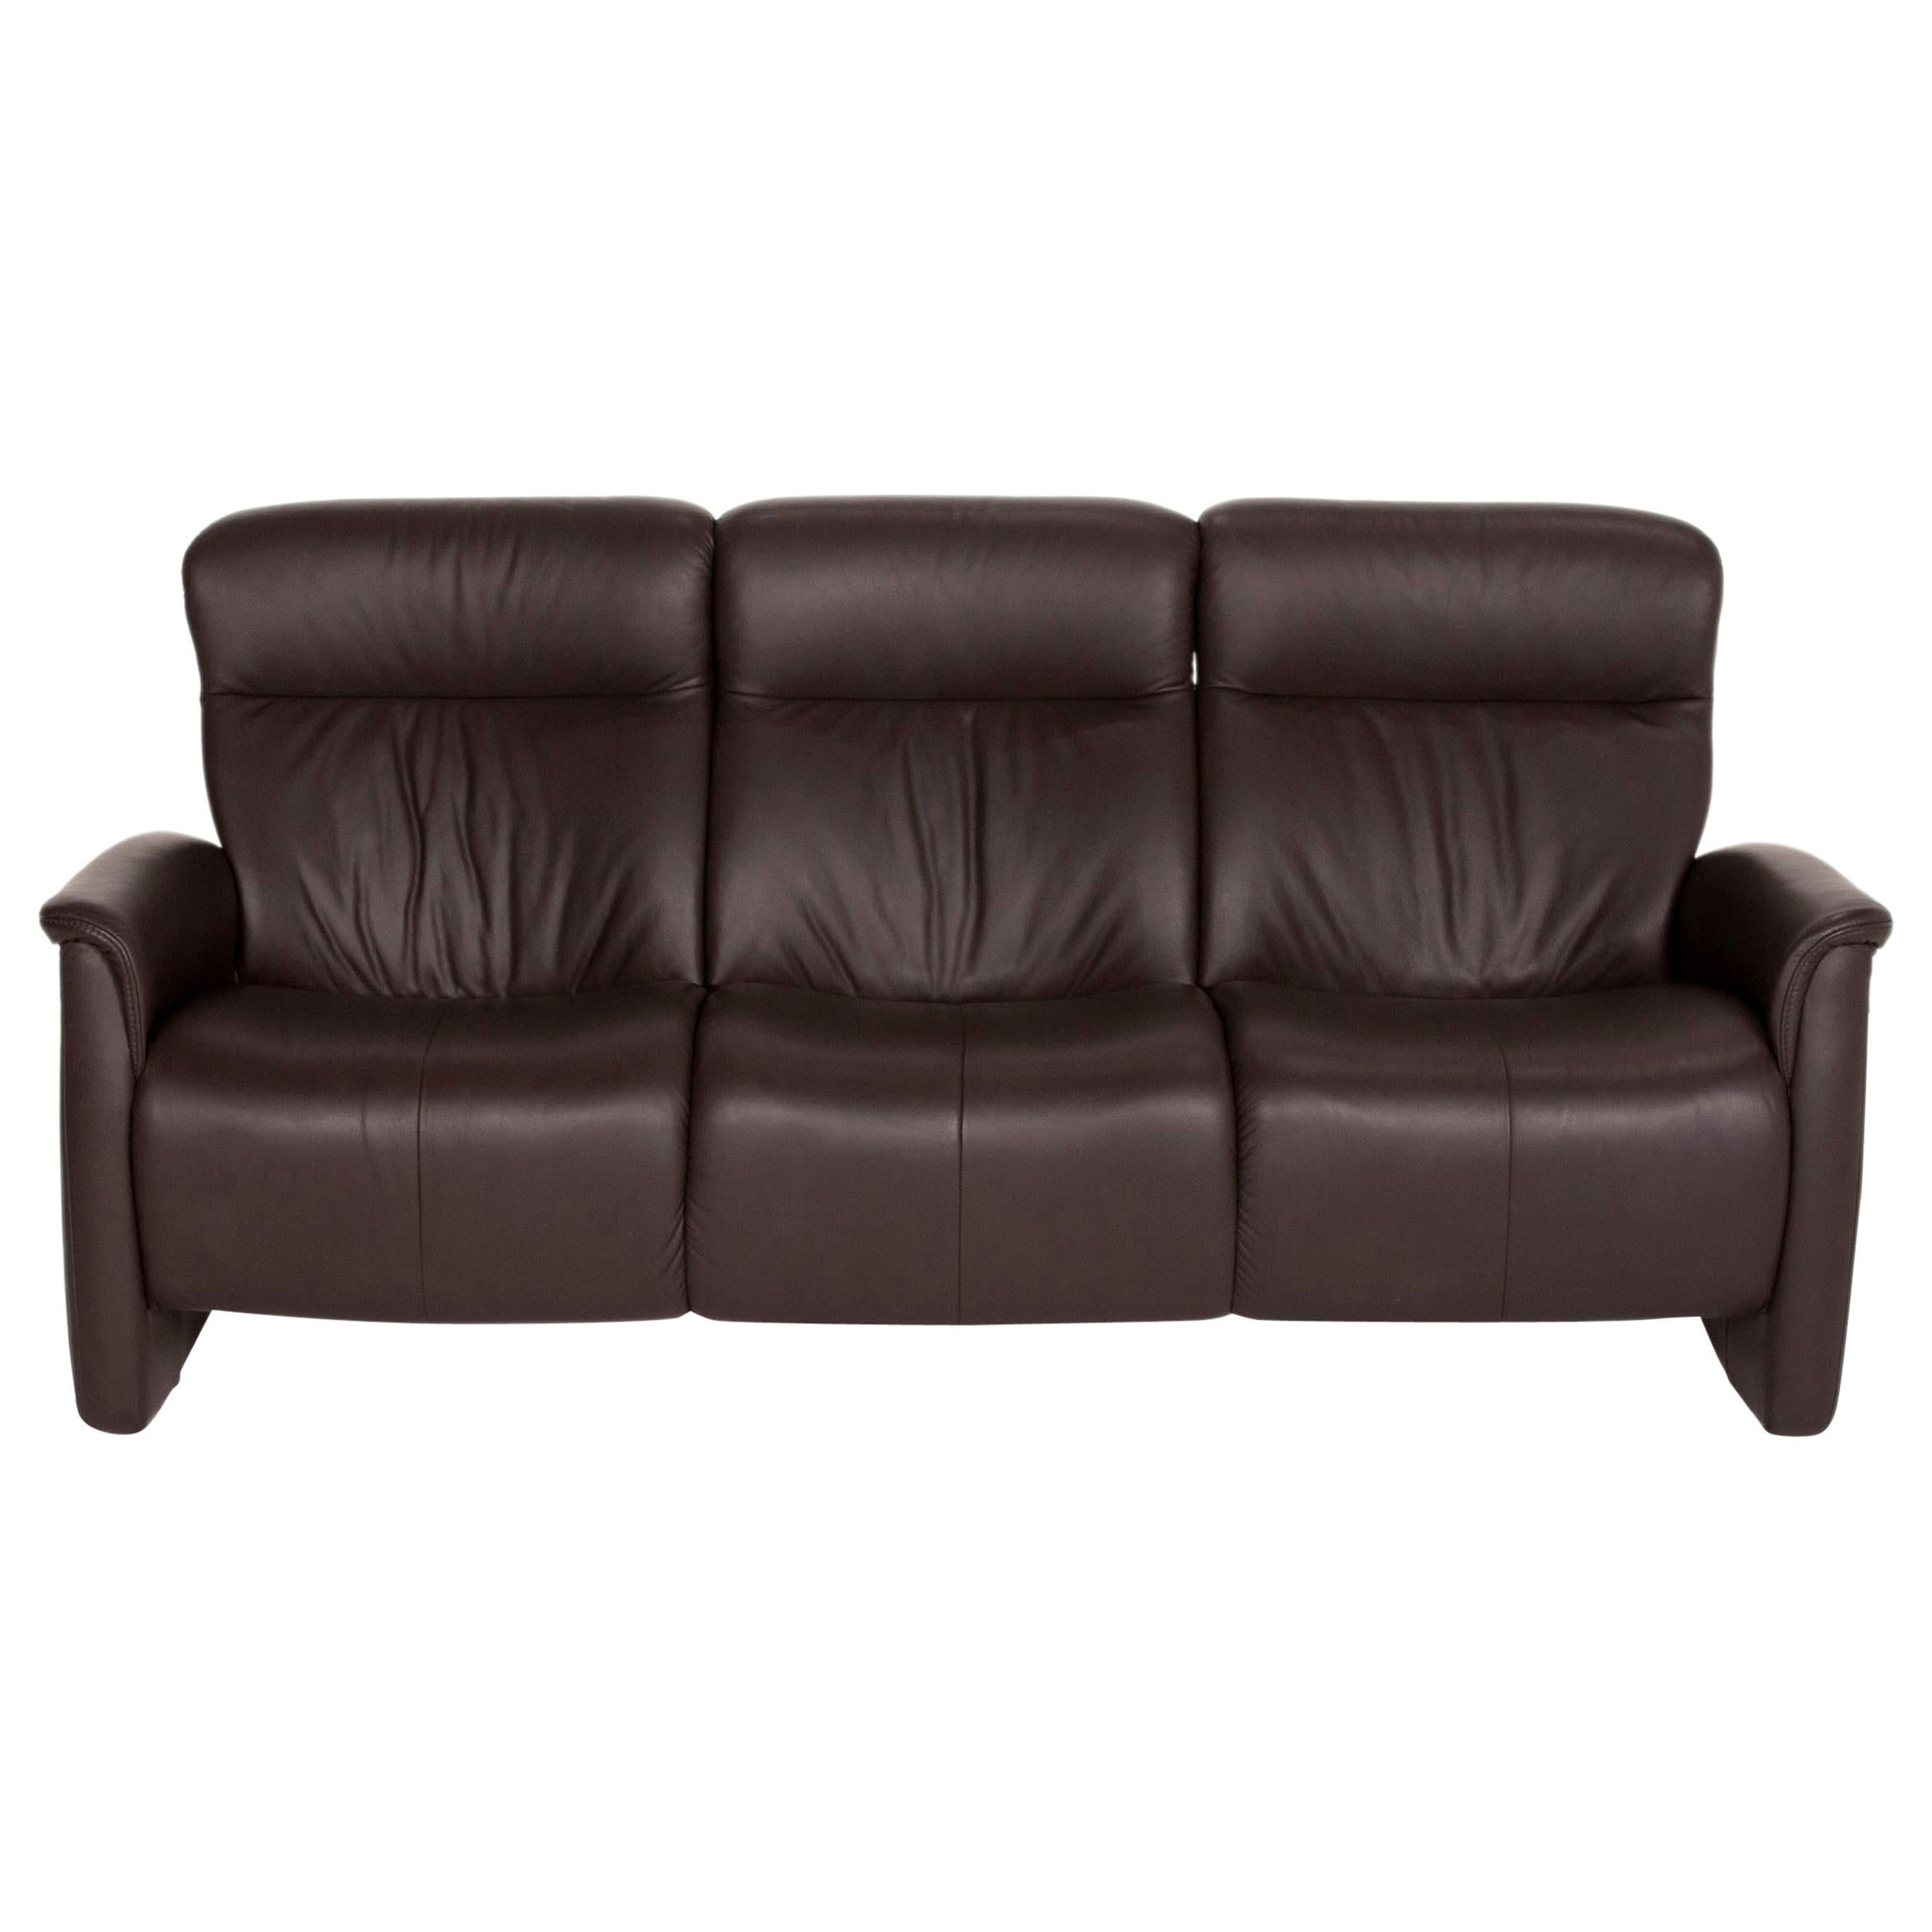 Himolla Leather Sofa Brown Dark Brown Three-Seater Couch